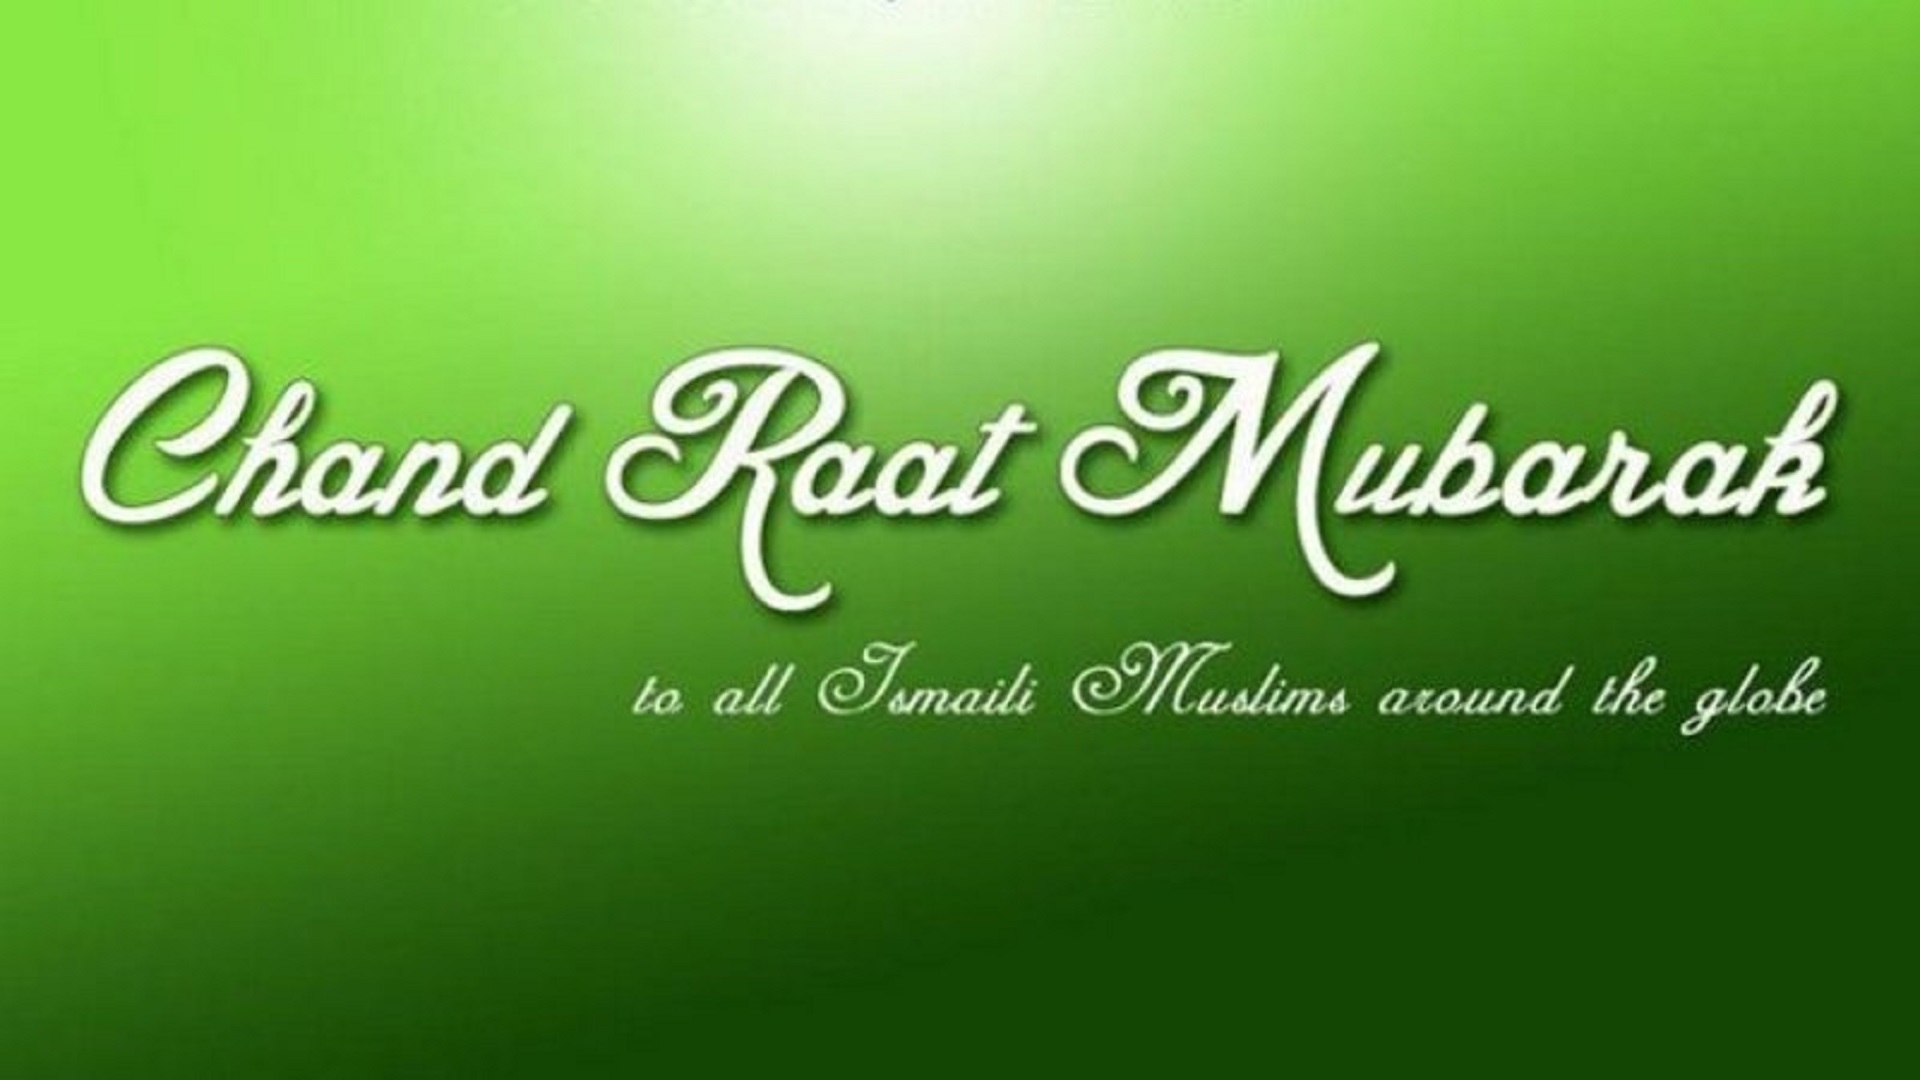 Chand Raat Mubarak Wallpapers 2